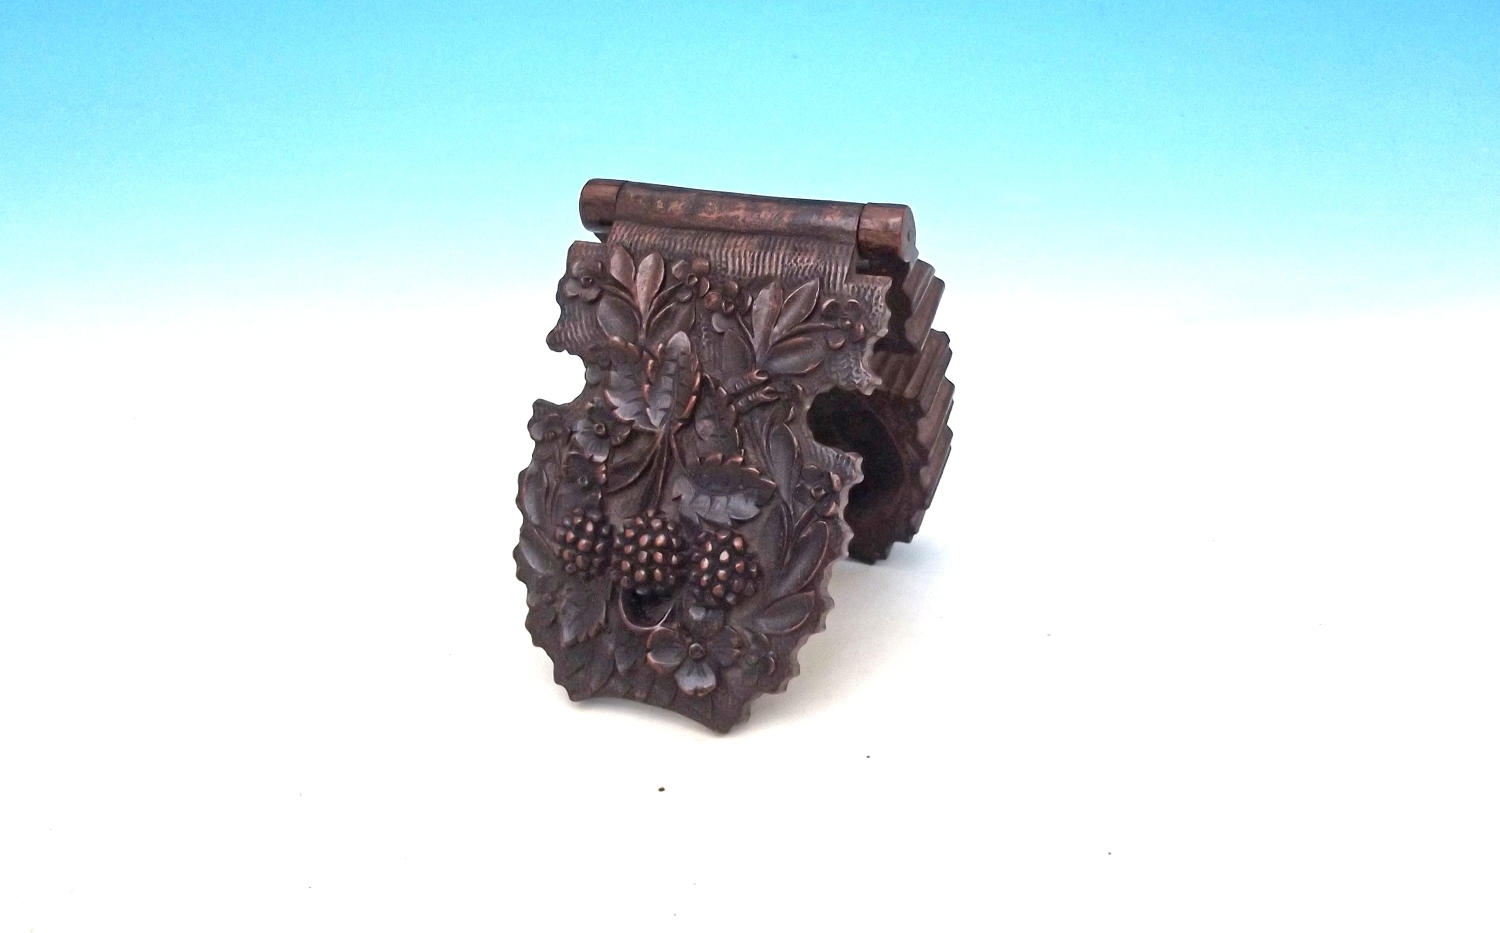 Antique Treen 19thc Fruitwood Pocket Watch Holder. Continental. C1860